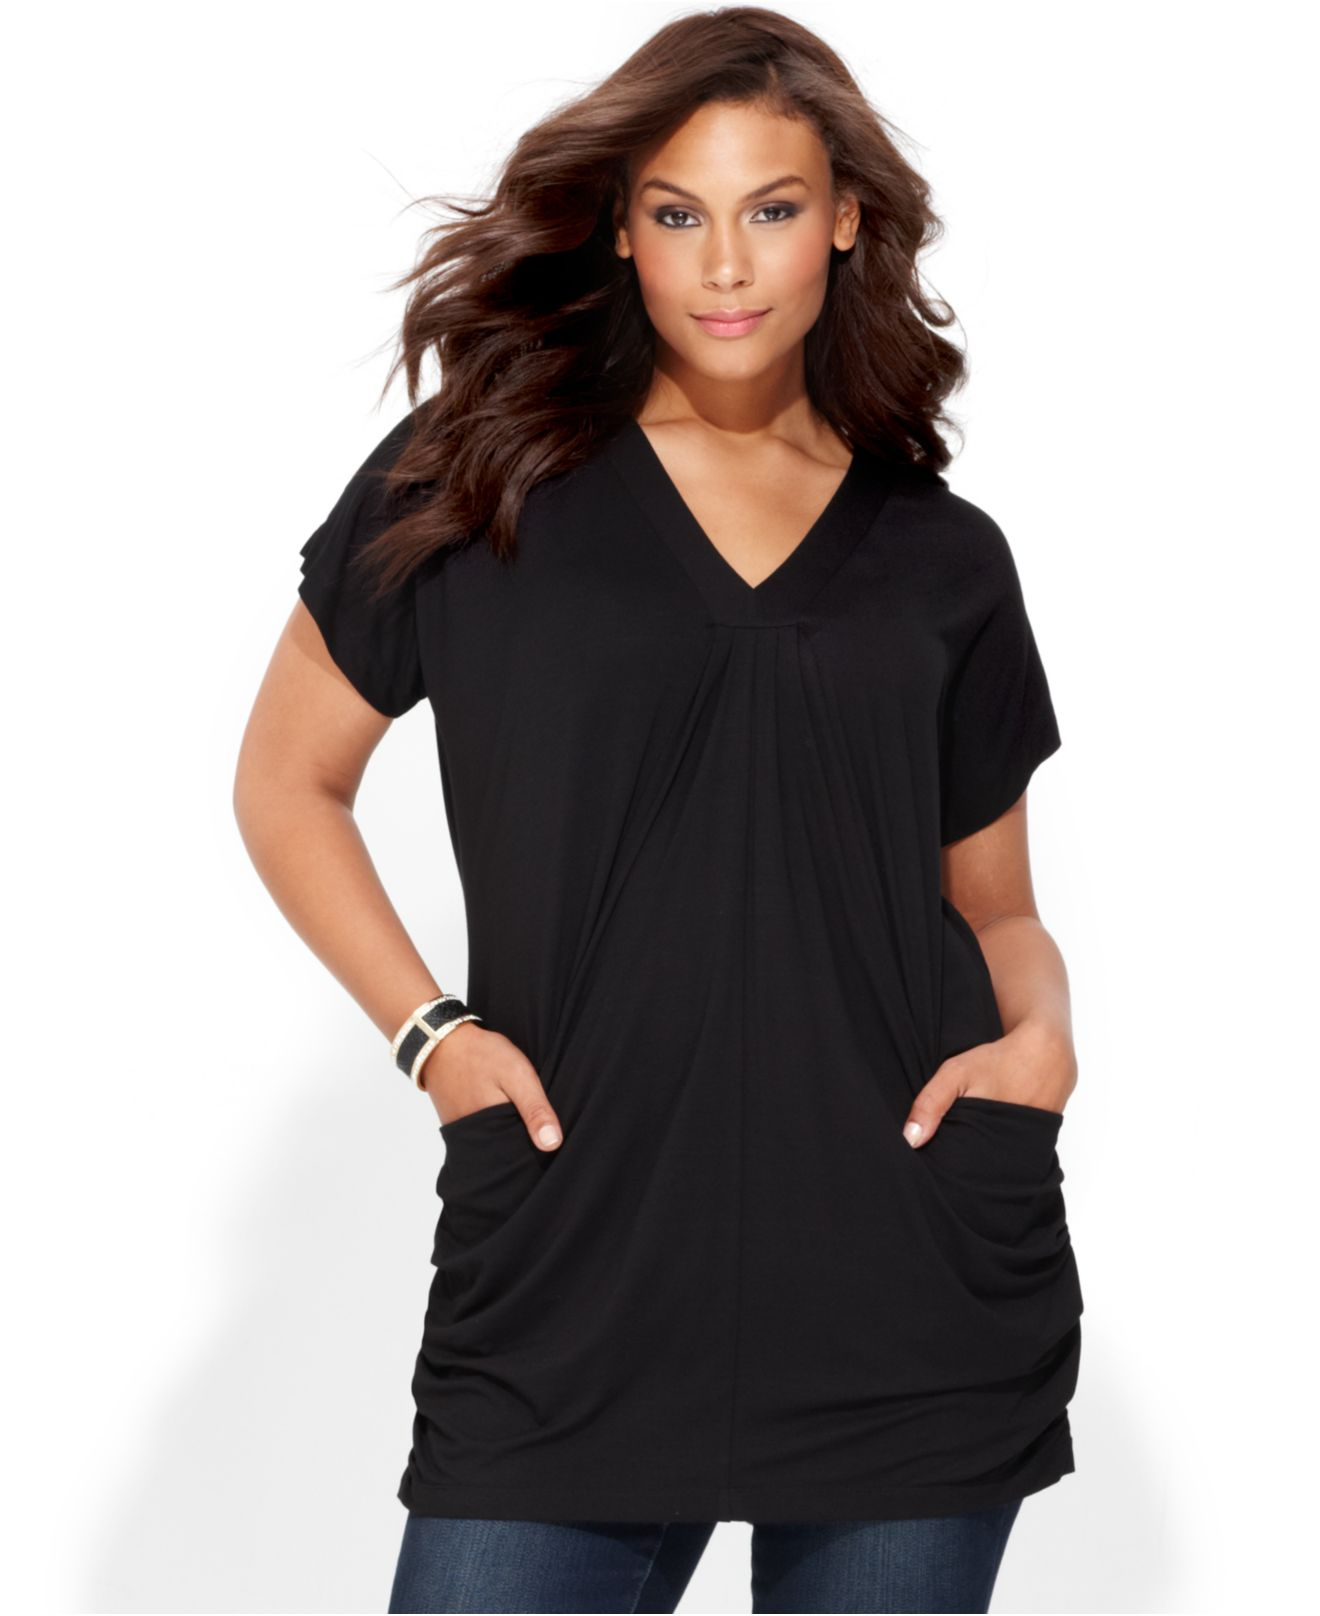 Find plus size tunics women at ShopStyle. Shop the latest collection of plus size tunics women from the most popular stores - all in one place.